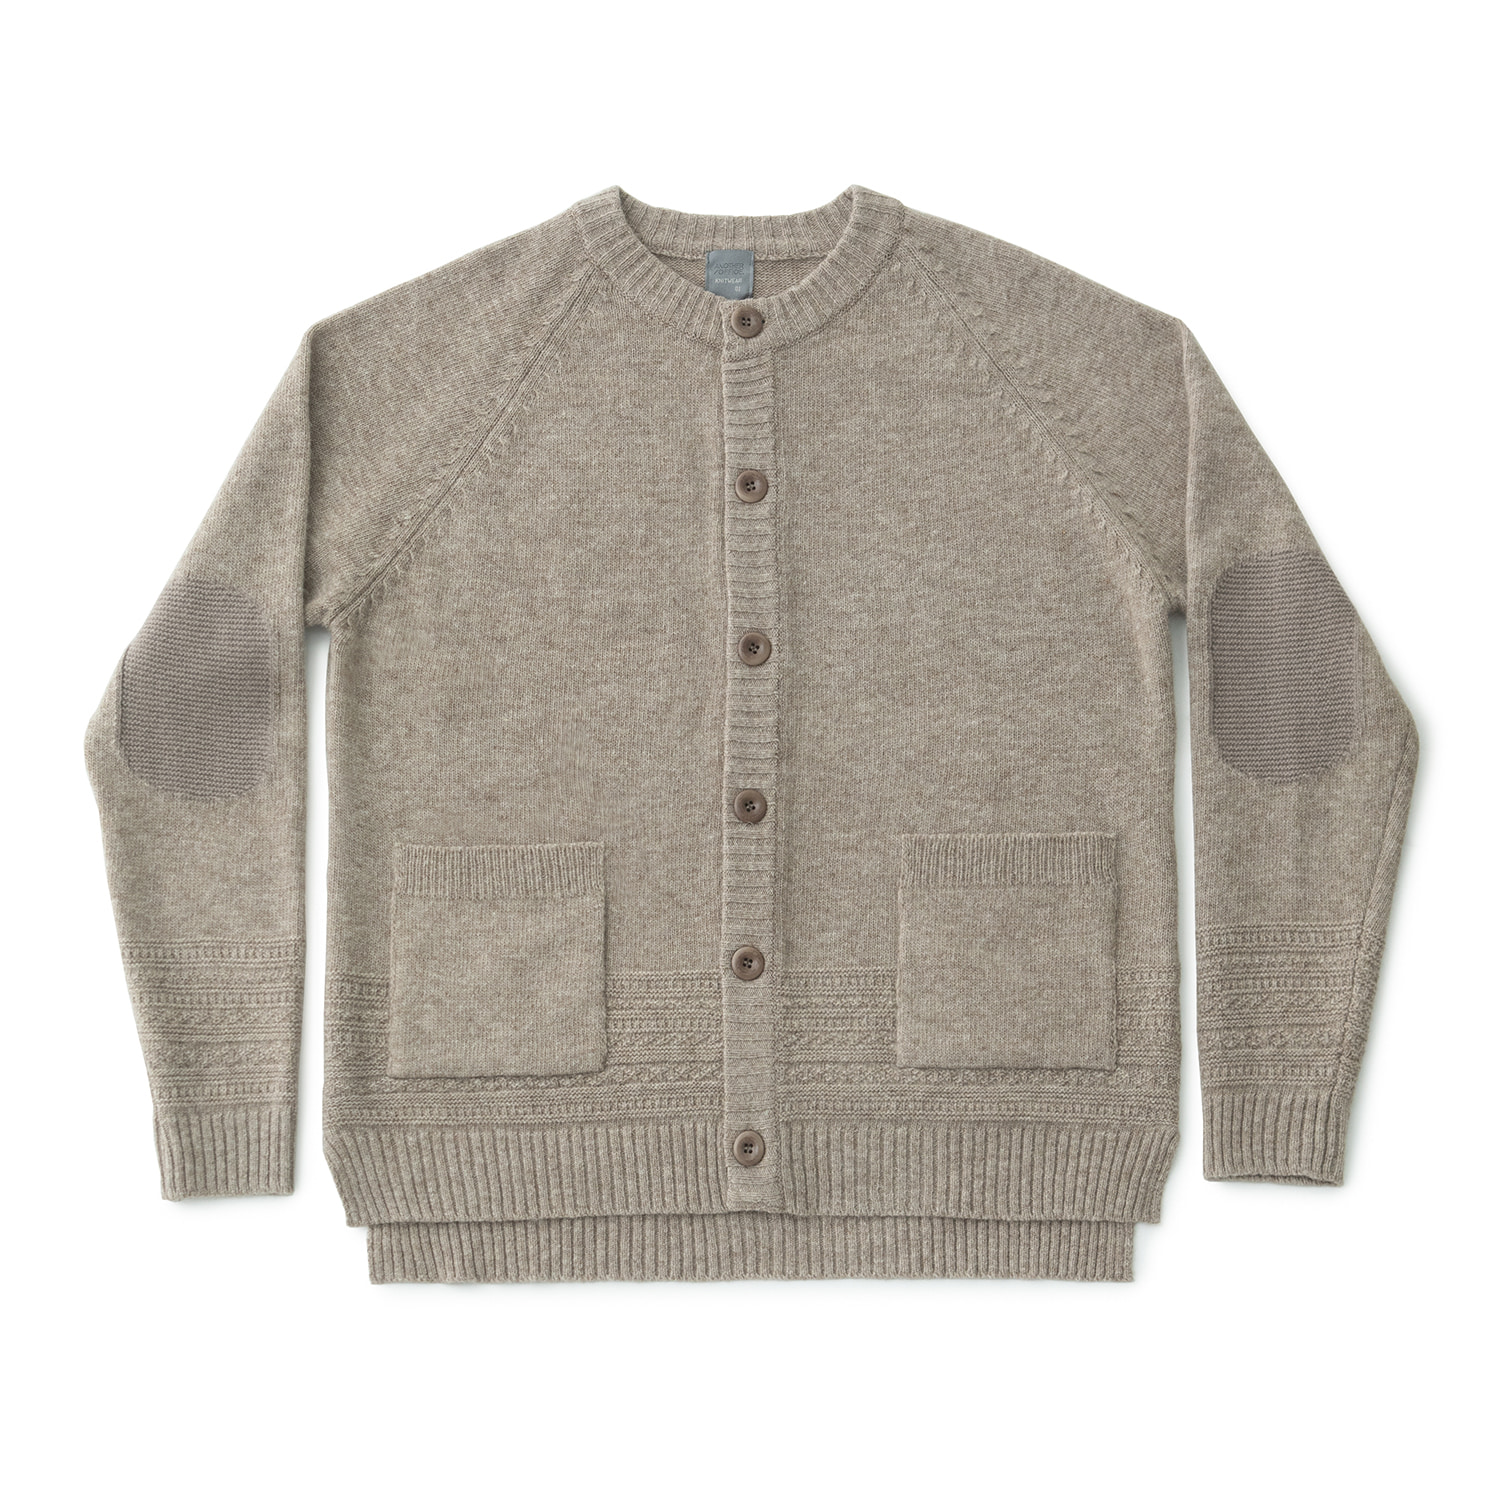 Gentle Links Cardigan (Oatmeal)